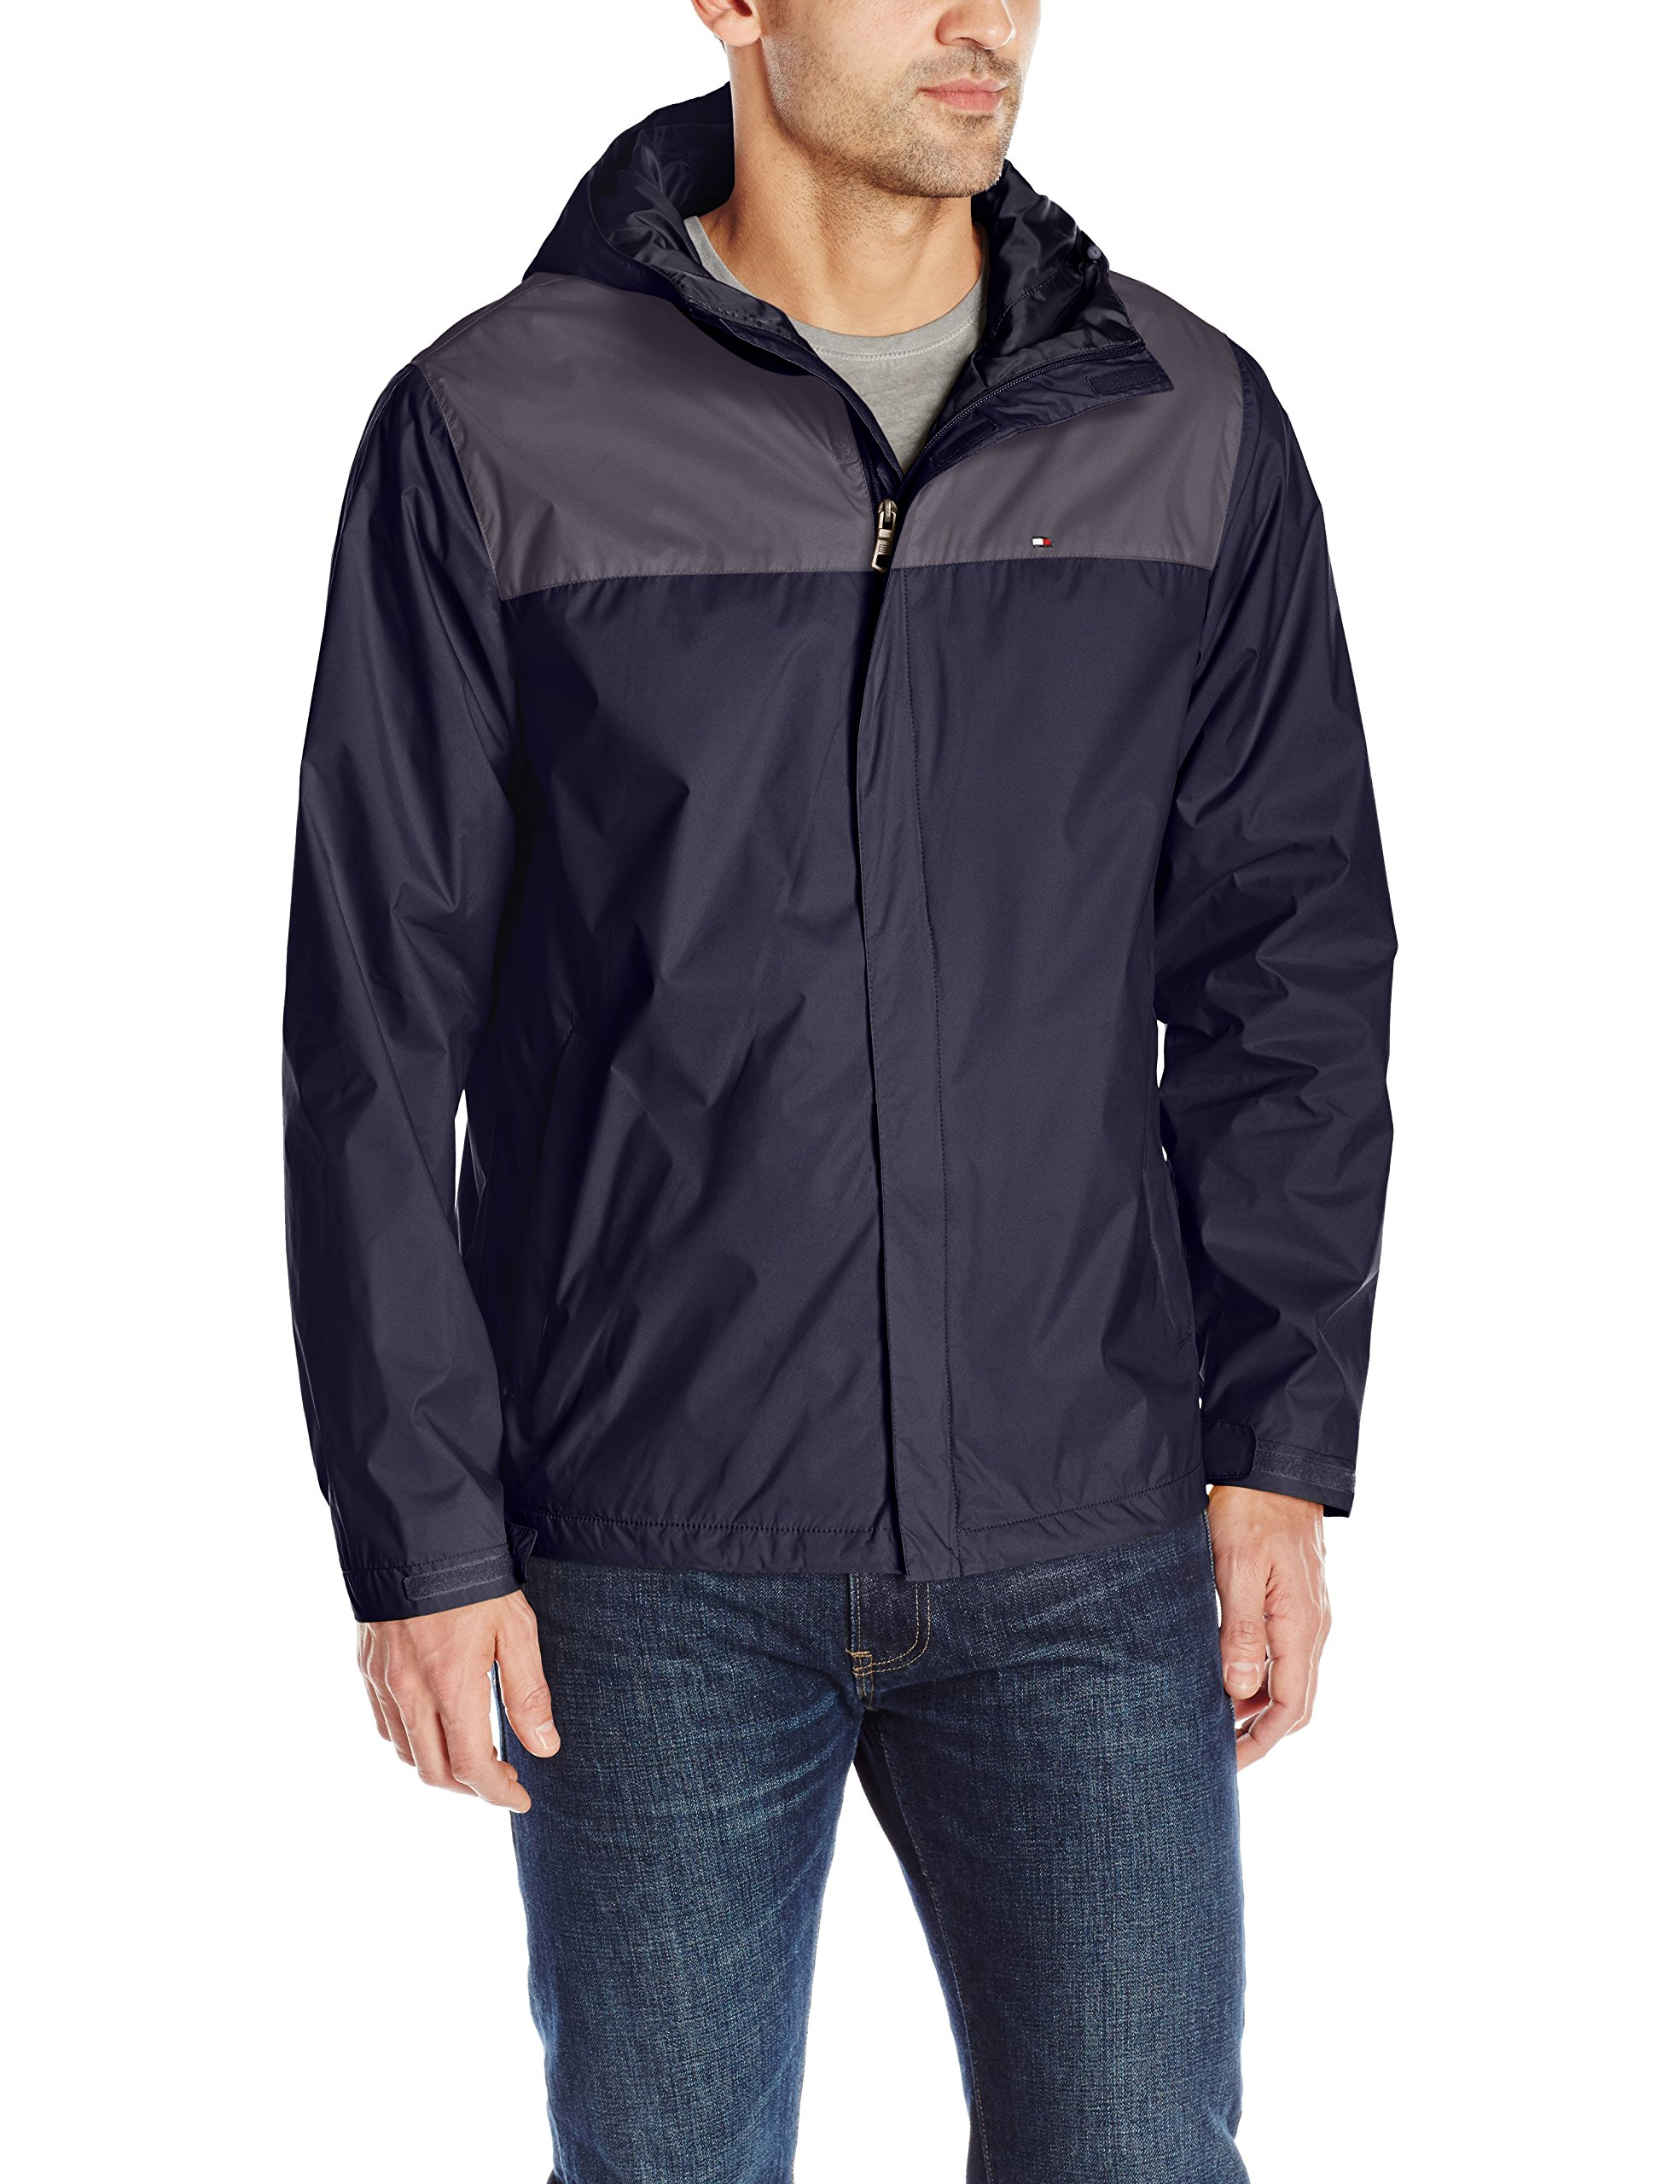 Tommy Hilfiger Men's Waterproof Breathable Hooded Jacket, Charcoal/Navy, L by Tommy Hilfiger